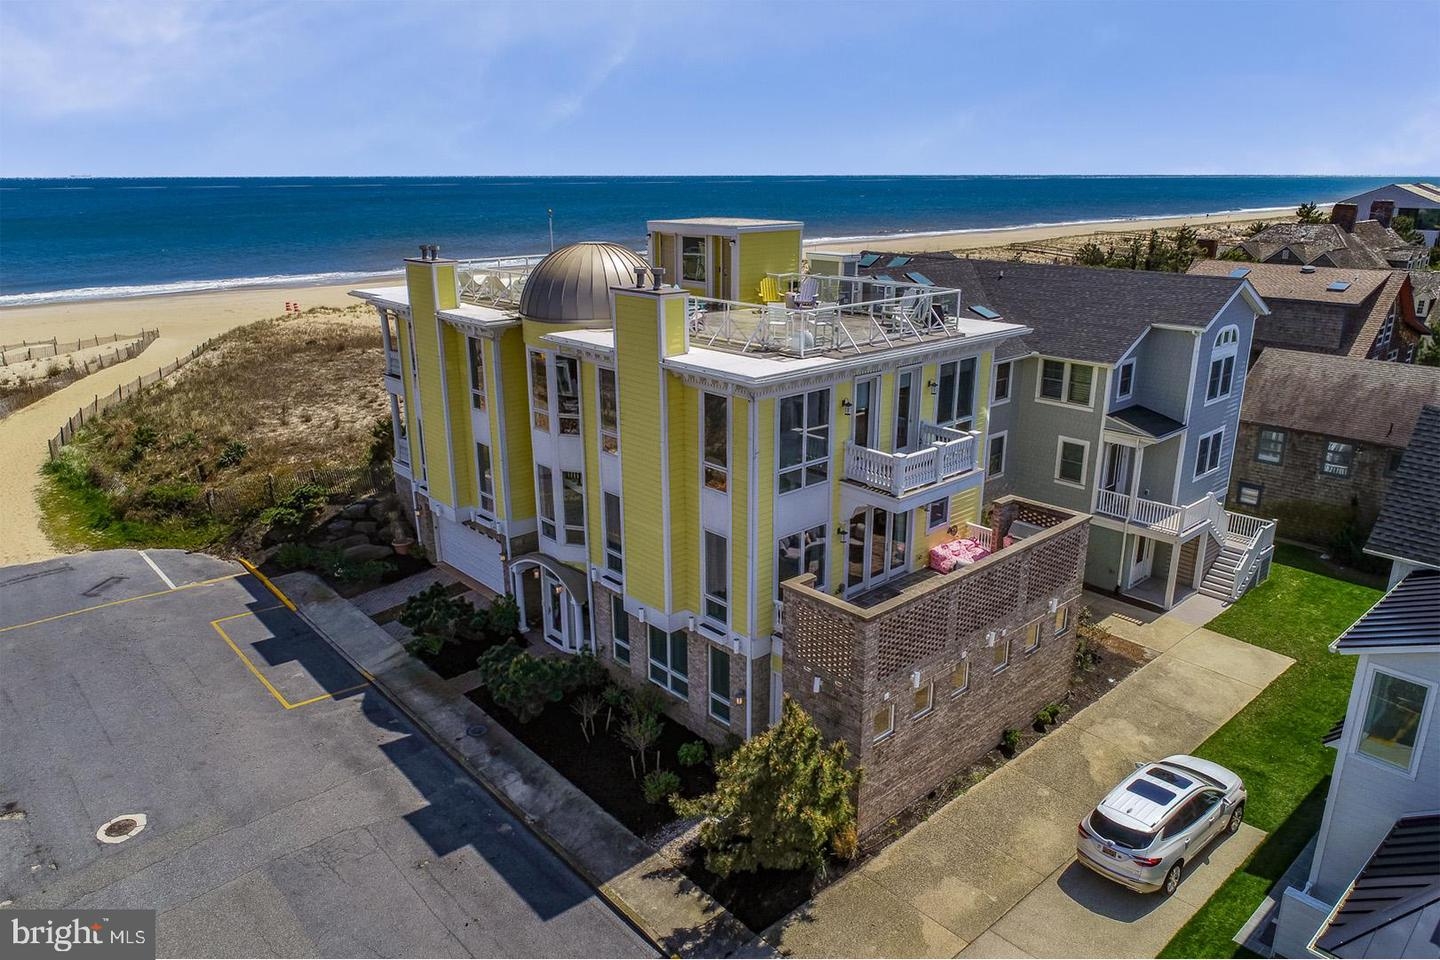 DESU159700-304101112379-2020-05-01-17-16-51 4 Prospect St | Rehoboth Beach, DE Real Estate For Sale | MLS# Desu159700  - Lee Ann Group